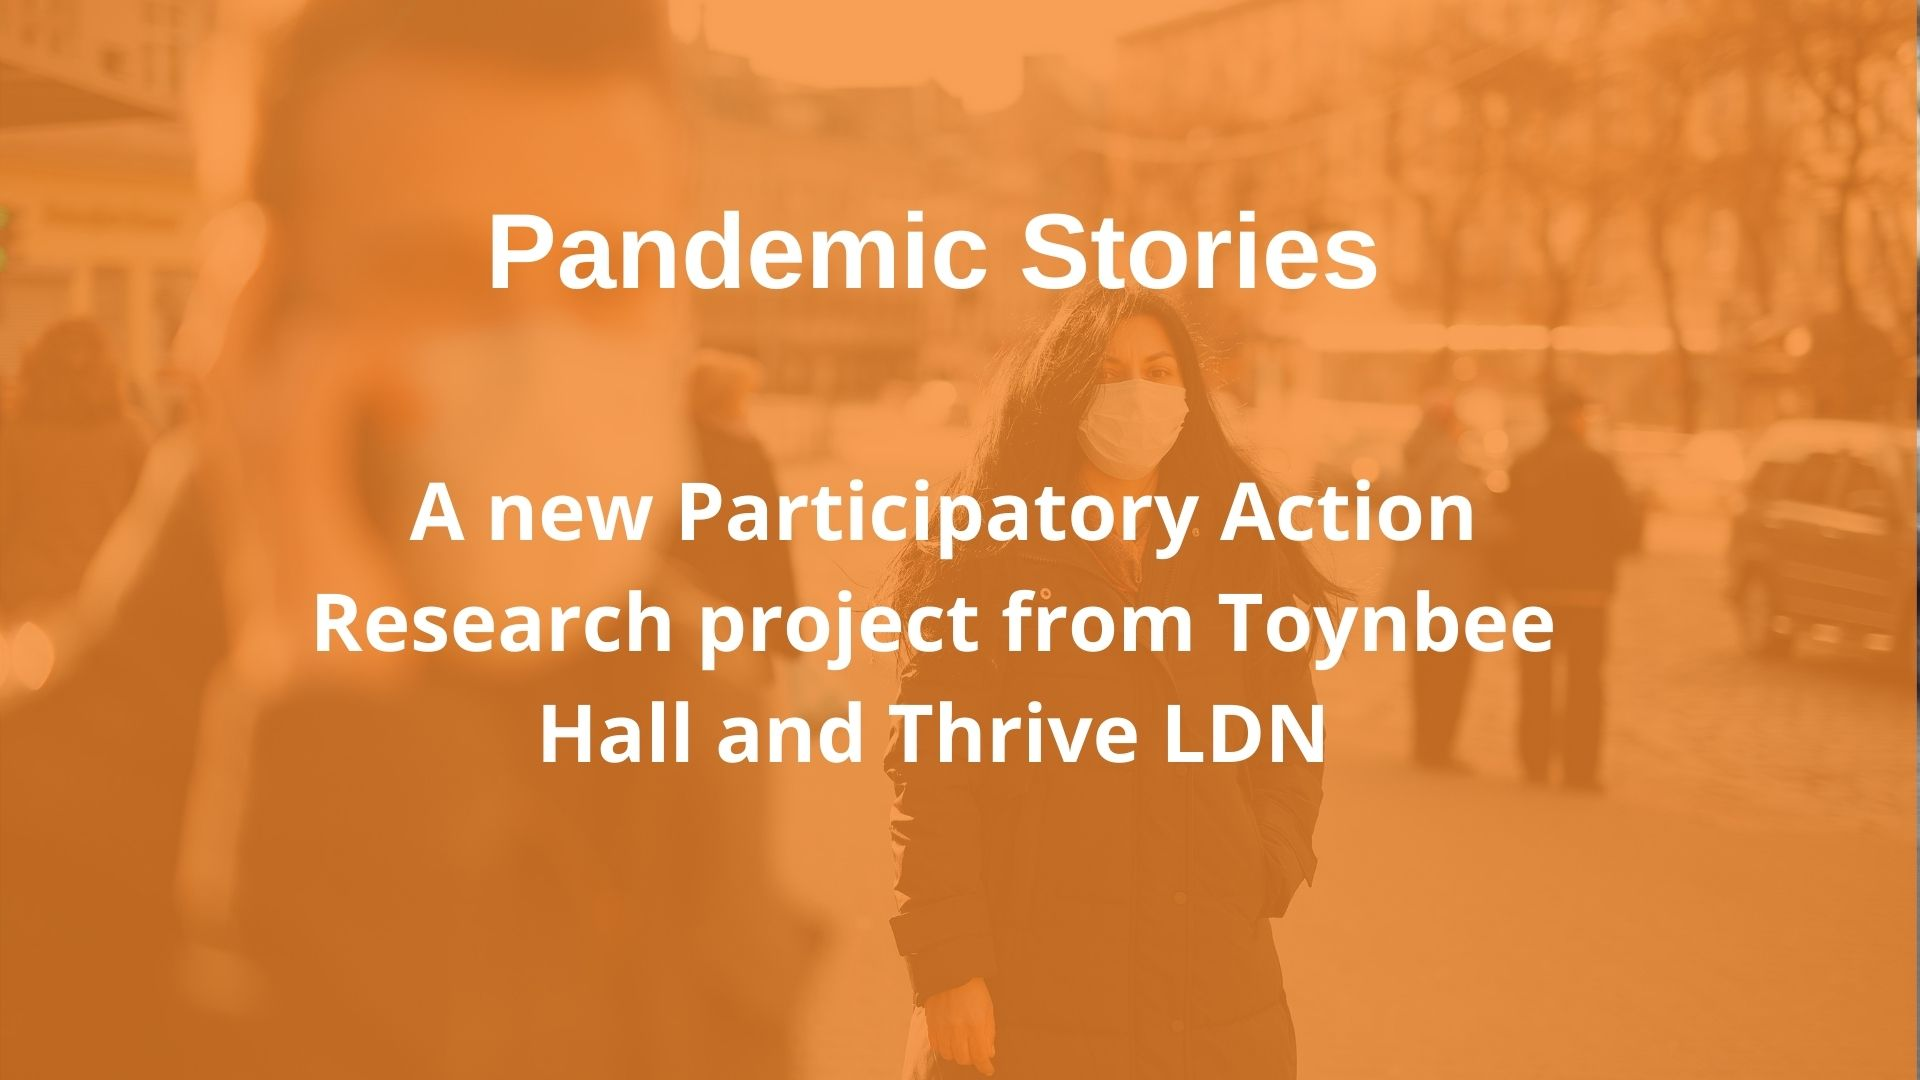 Pandemic Stories - A new participatory research project by Toynbee Hall and Thrive LDN